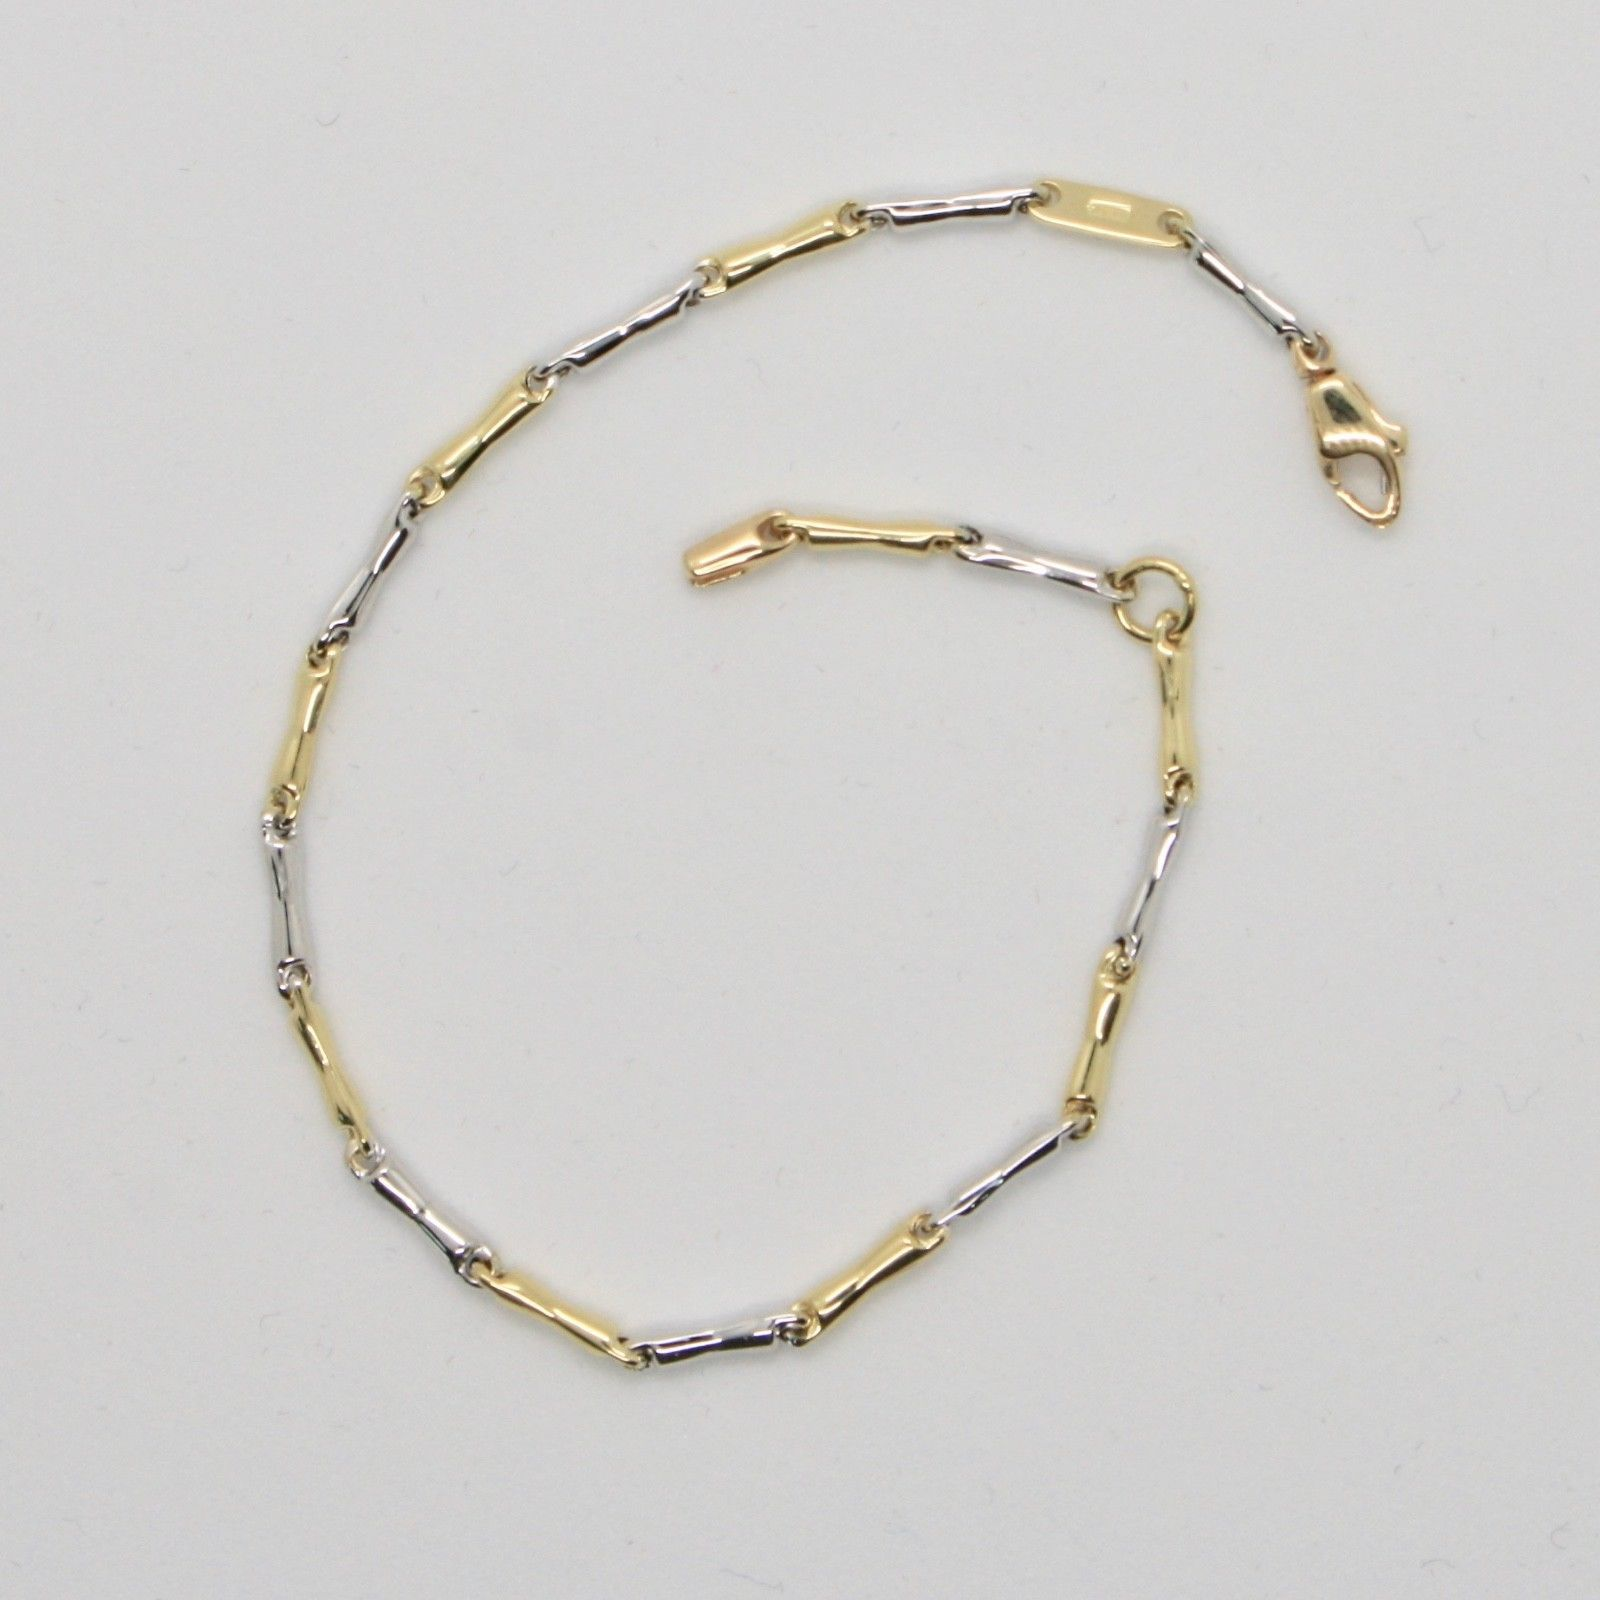 BRACELET OR 18 KT 750 BLANC ET JAUNE TRICOTÉ RONDES MADE IN ITALY 17 CM